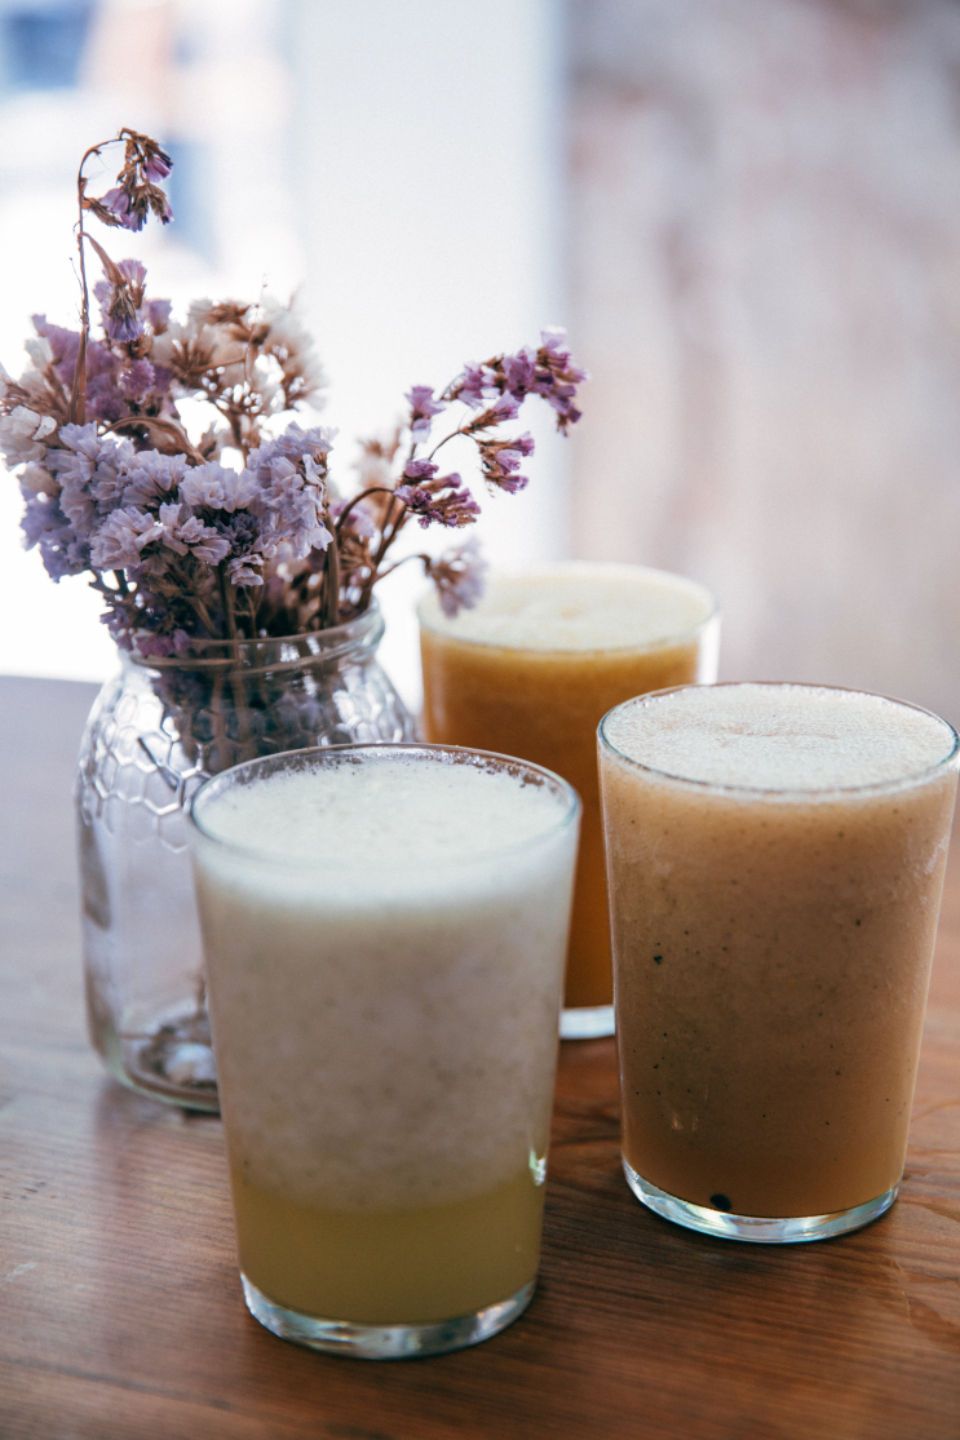 juice smoothy close up fresh healthy diet drink nurtrition snack flowers milkshake food fruit yogurt breakfast cold dessert glass homemade organic refreshment beverage bloom blossom jar table indoors